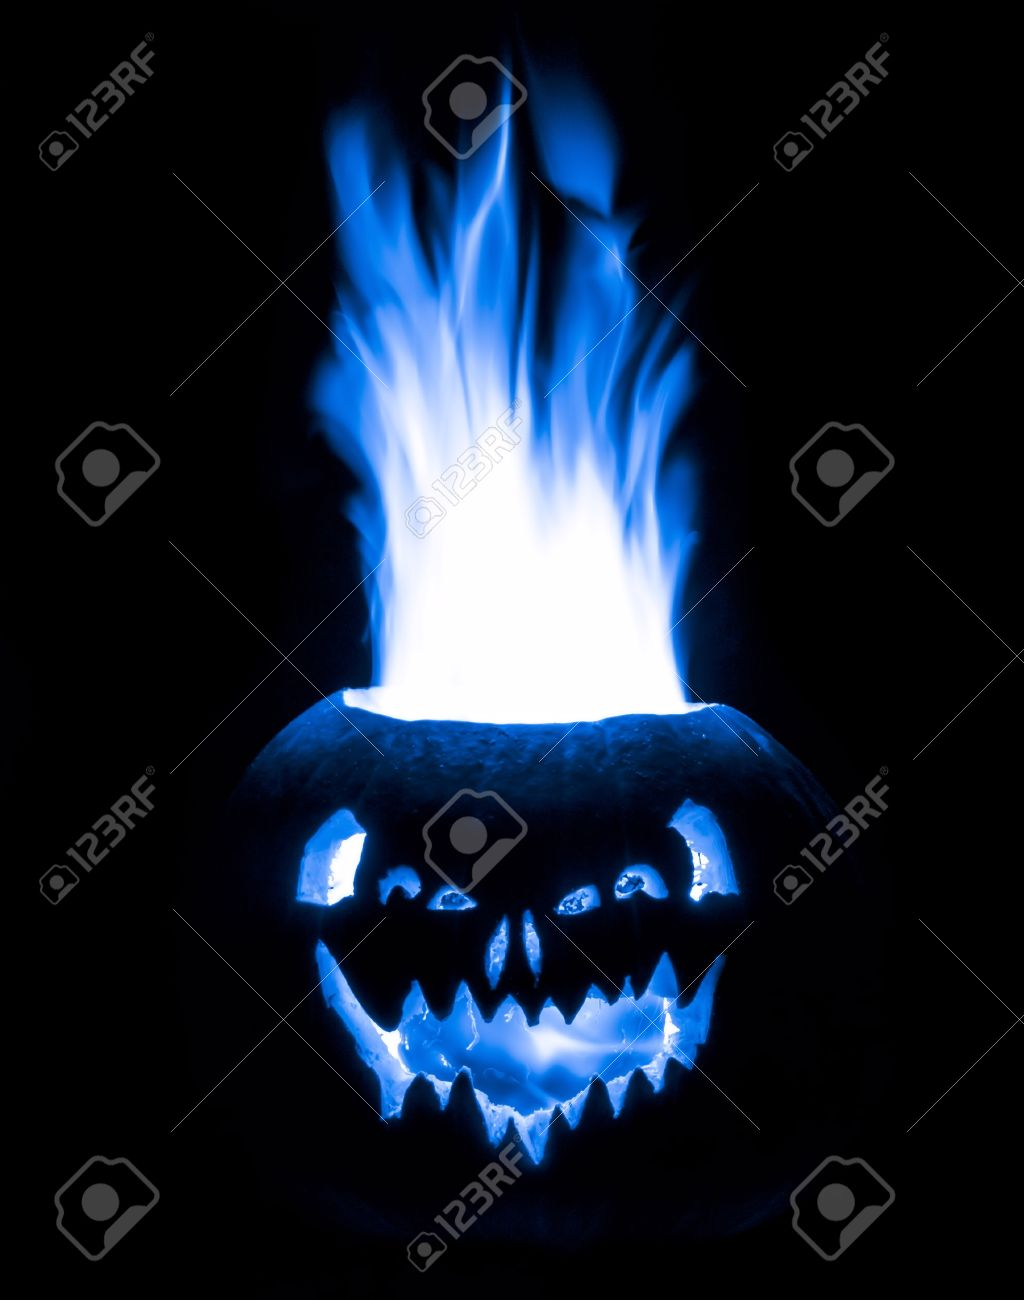 a halloween jack o lantern pumpkin that is emitting electric blue fire isolated on